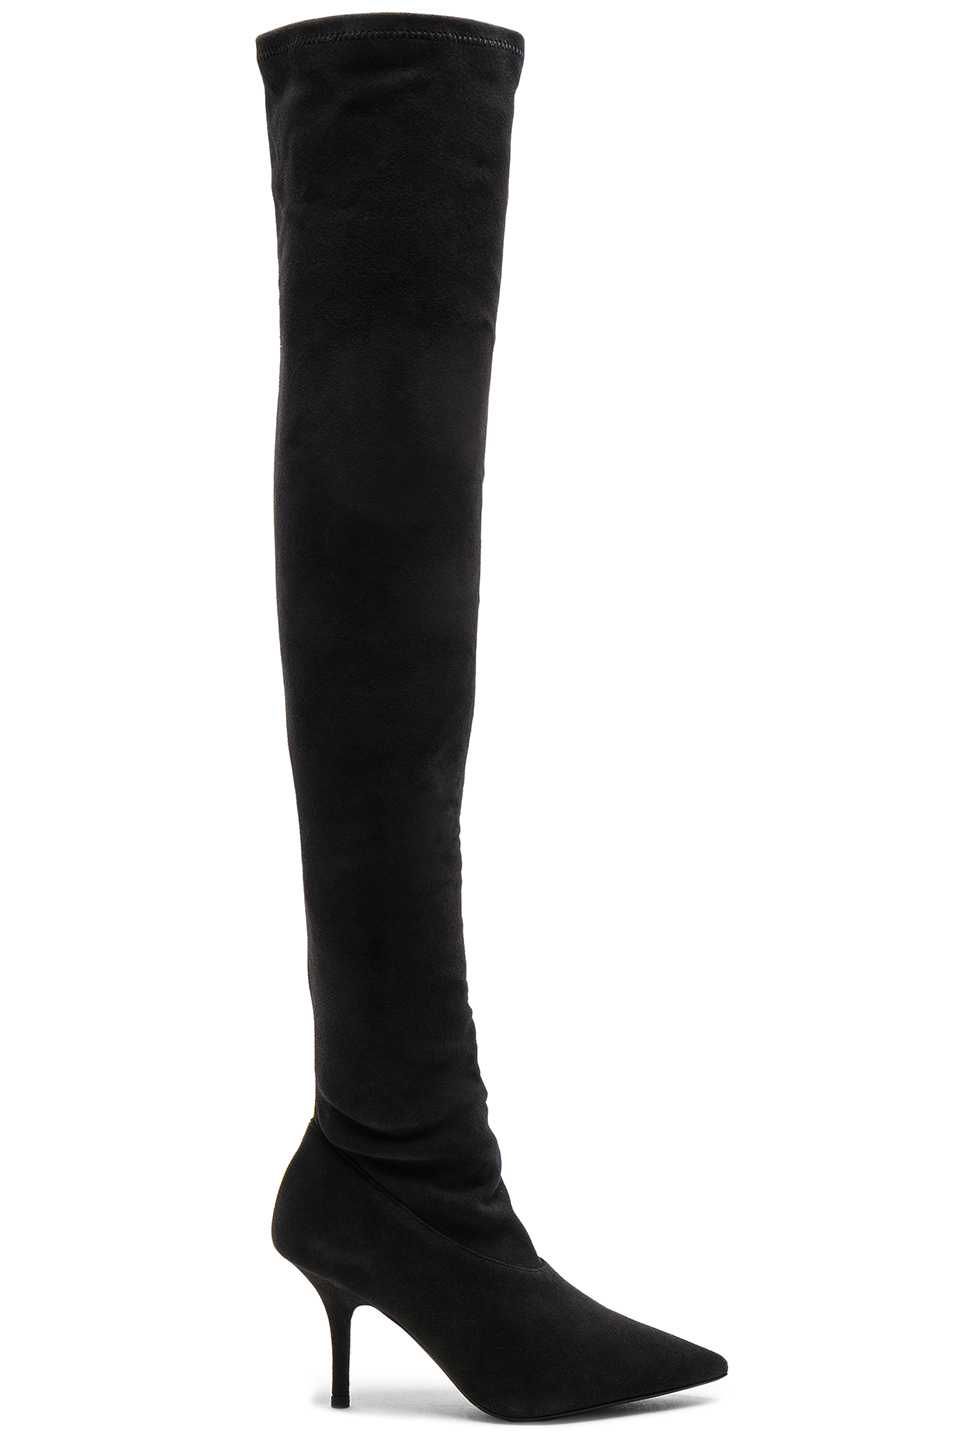 outlet store new lifestyle cheap prices Season 5 Suede Thigh High Boots, YEEZY